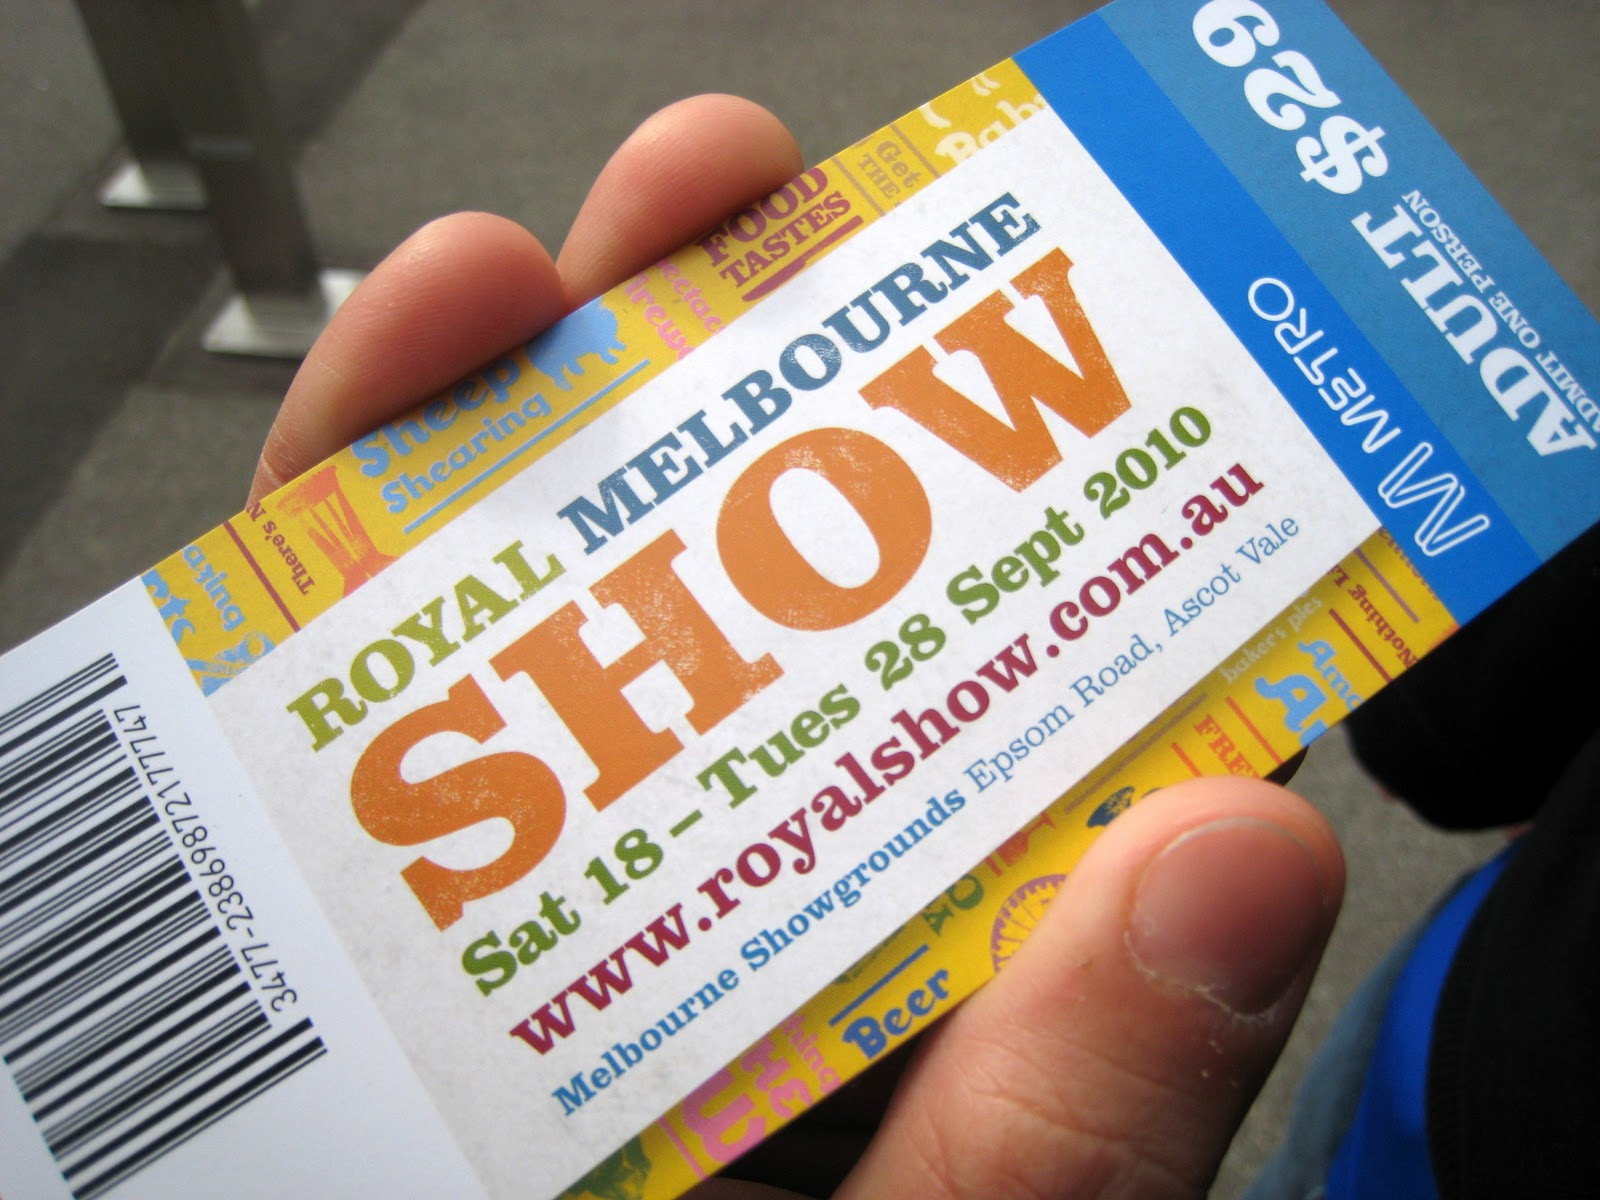 royal melbourne show tickets - photo #6